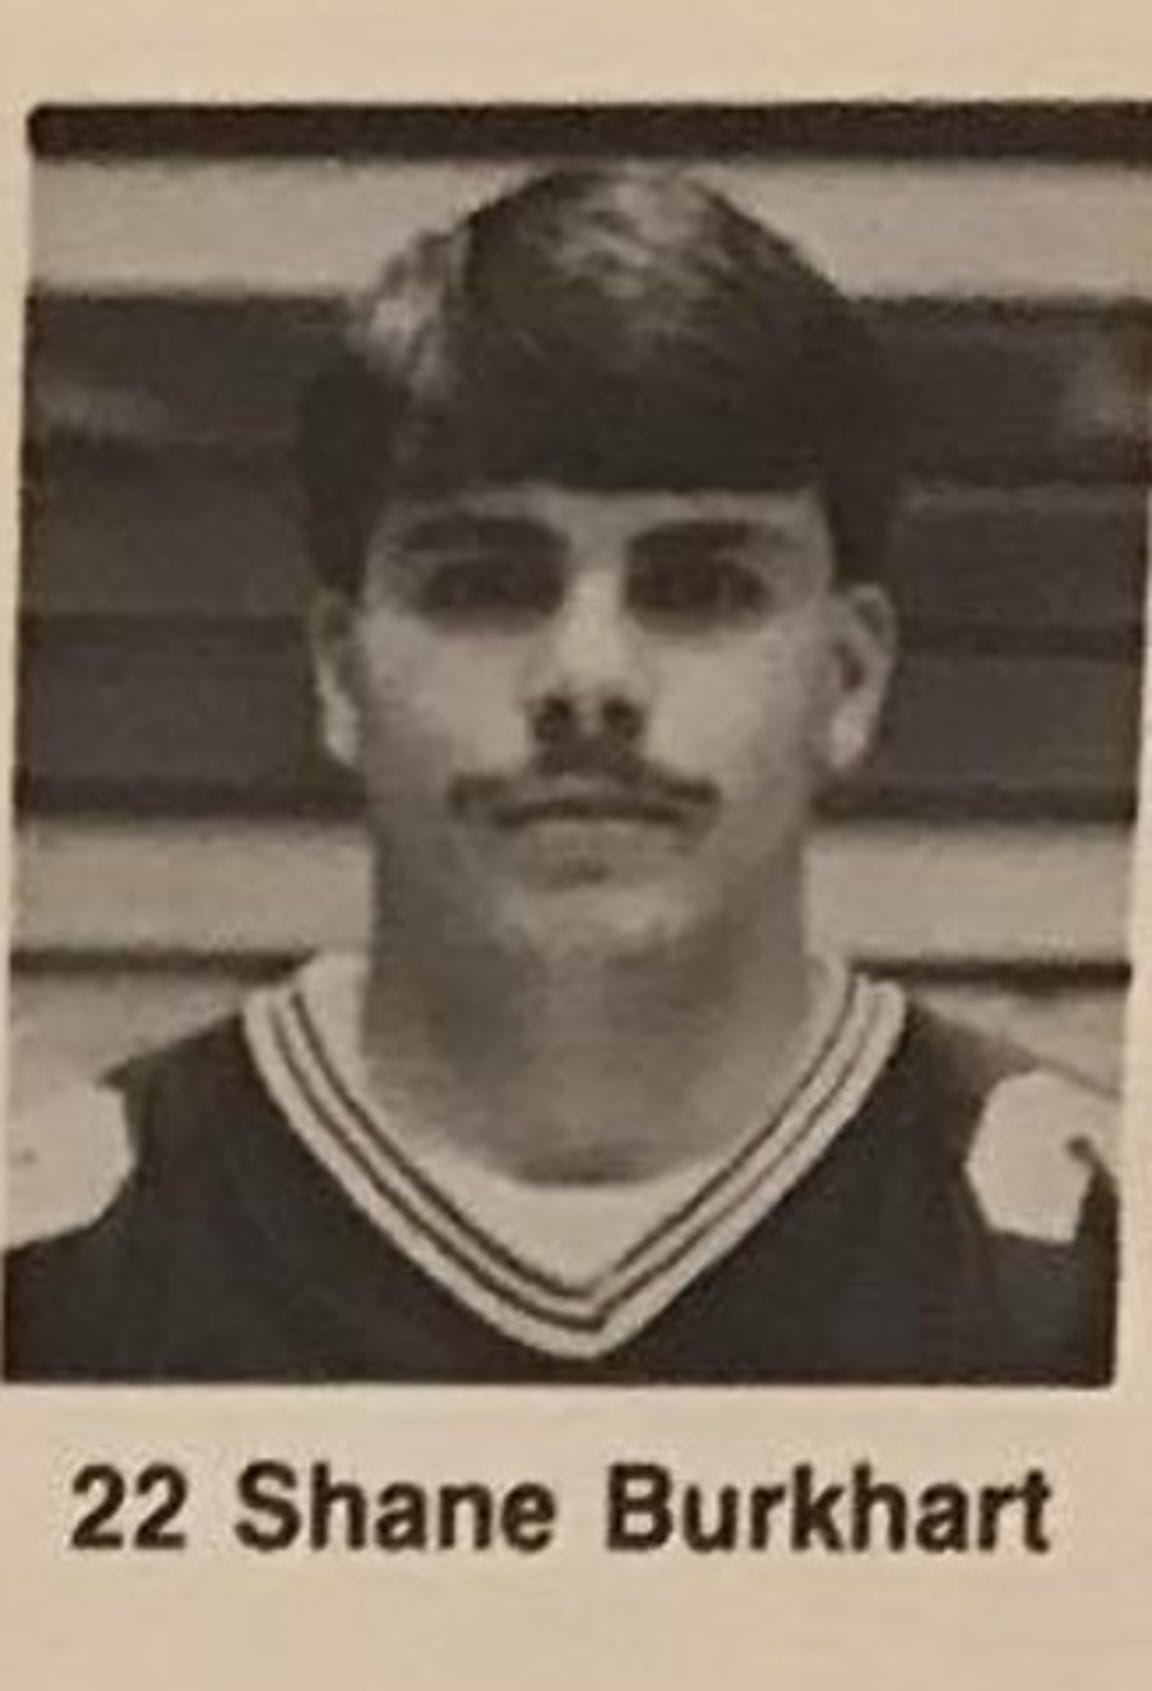 Shane Burkhart during his football-playing days at Marion High School.